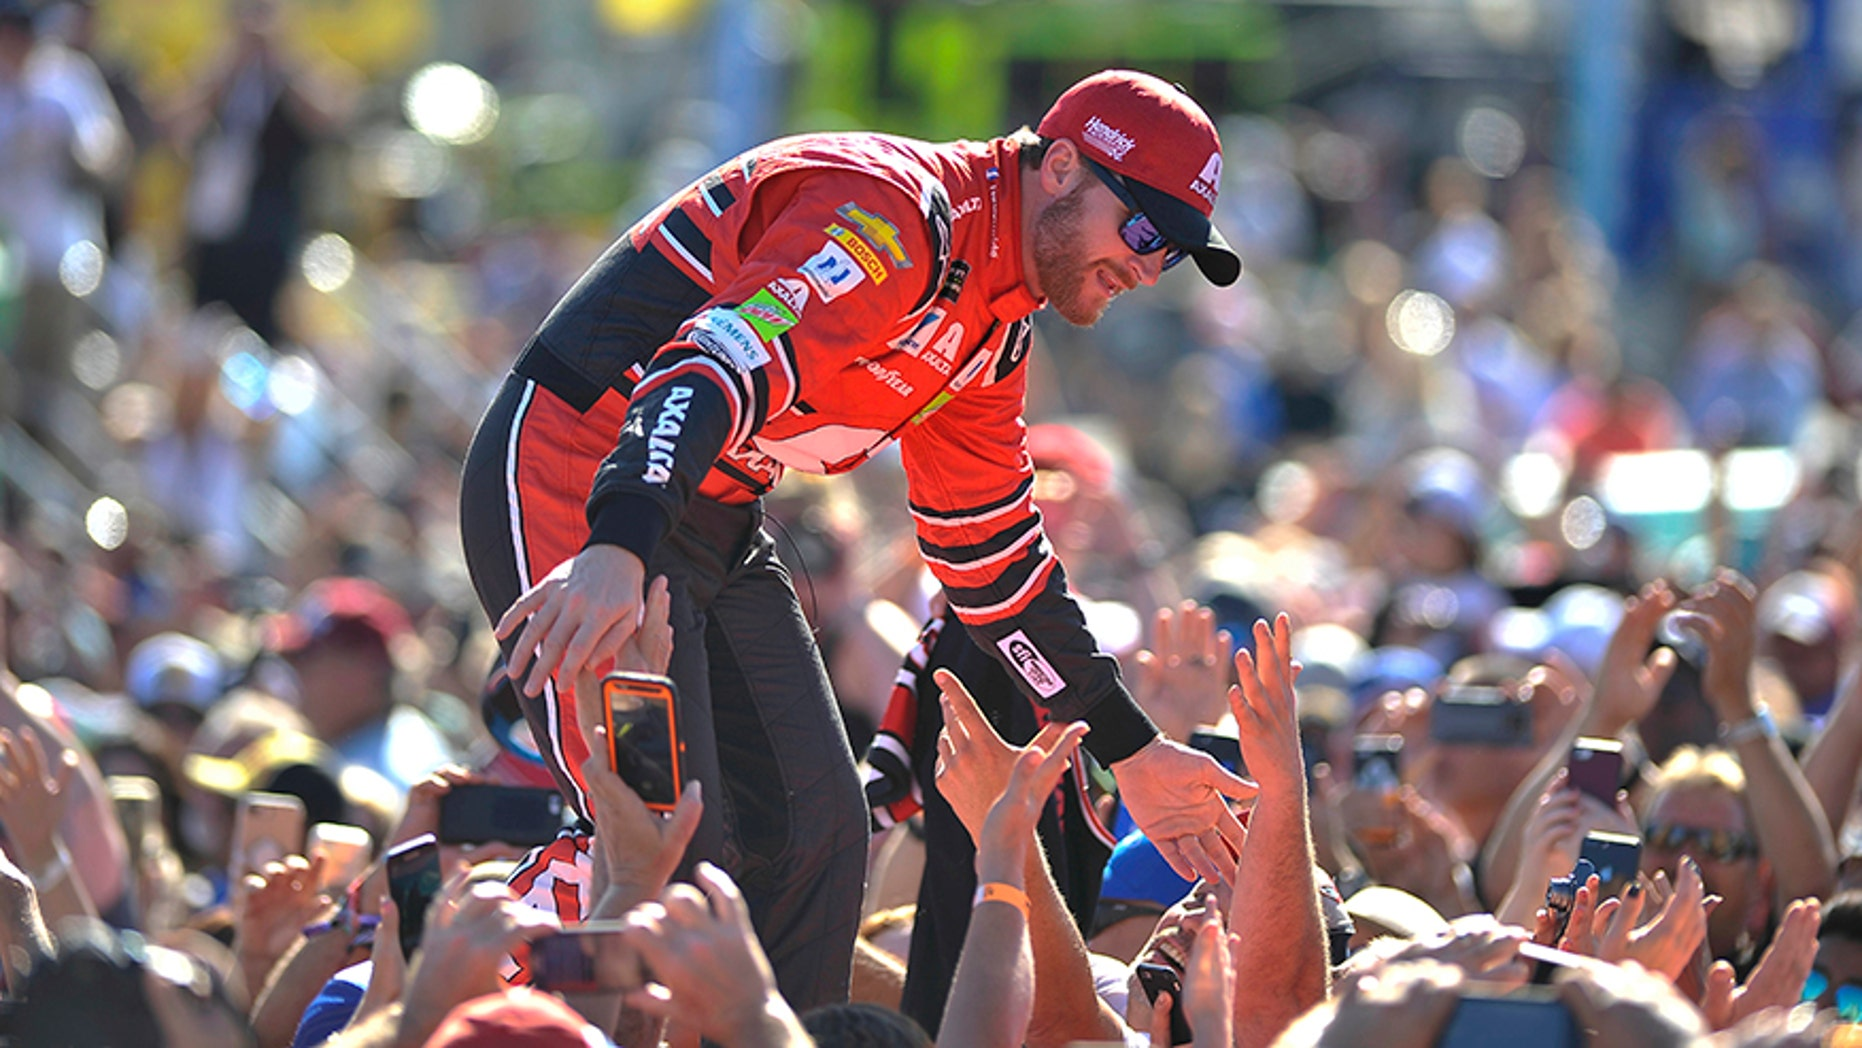 Dale Earnhardt Jr. greets fans as he is introduced before a NASCAR Cup Series auto race at Homestead-Miami Speedway in Homestead, Fla., Sunday, Nov. 19, 2017. (AP Photo/Gaston De Cardenas)